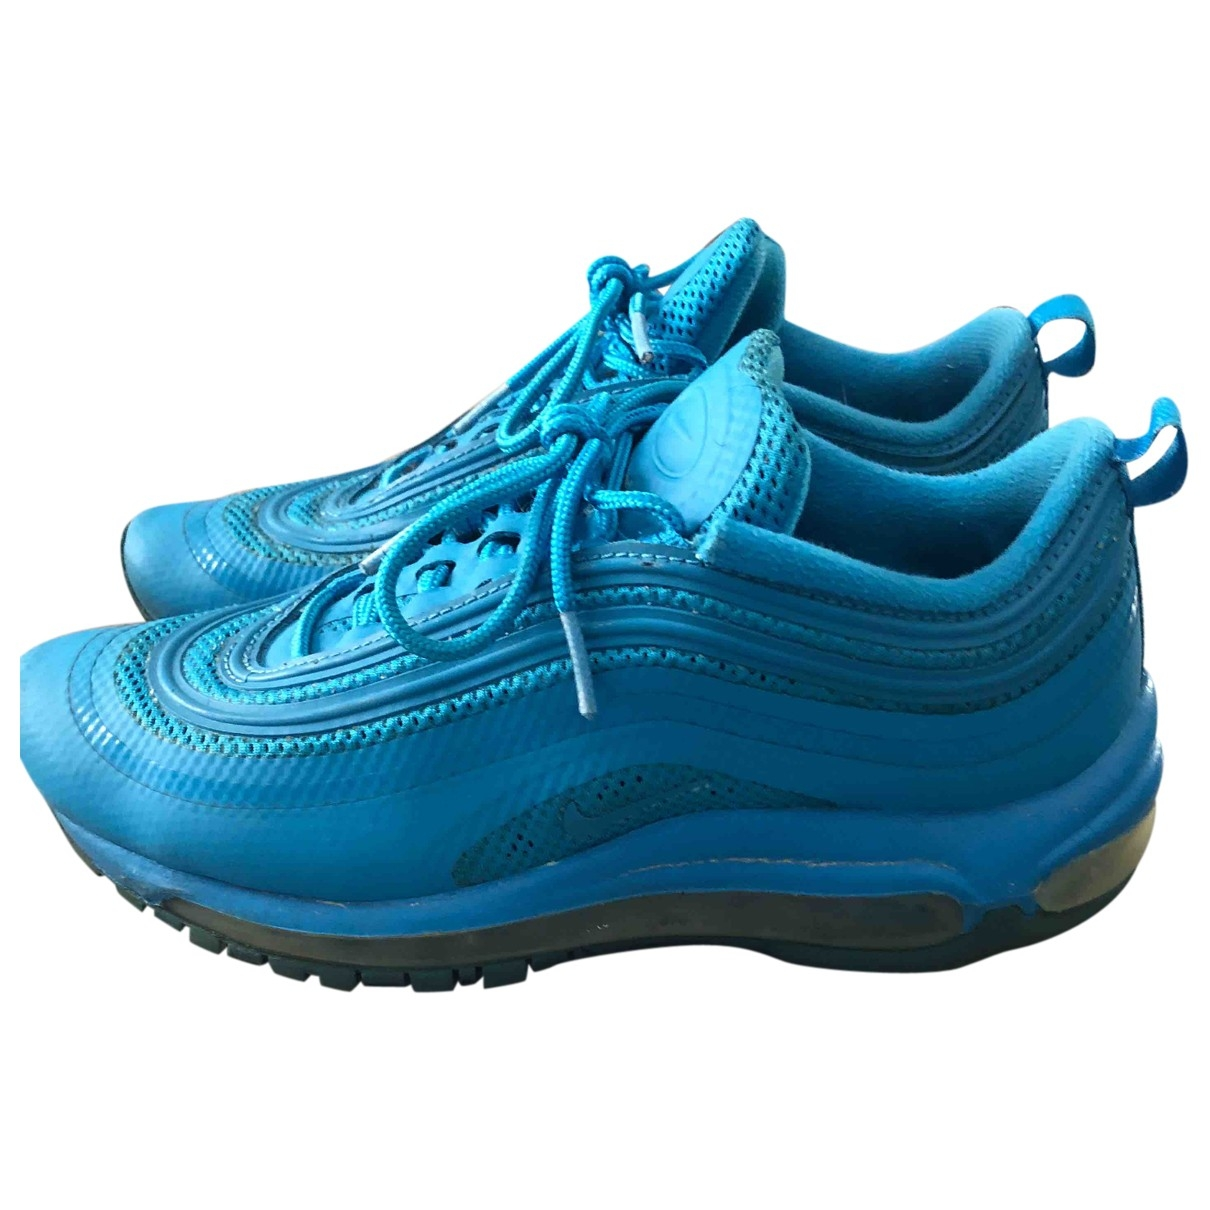 Nike Air Max 97 Turquoise Cloth Trainers for Women 38.5 EU